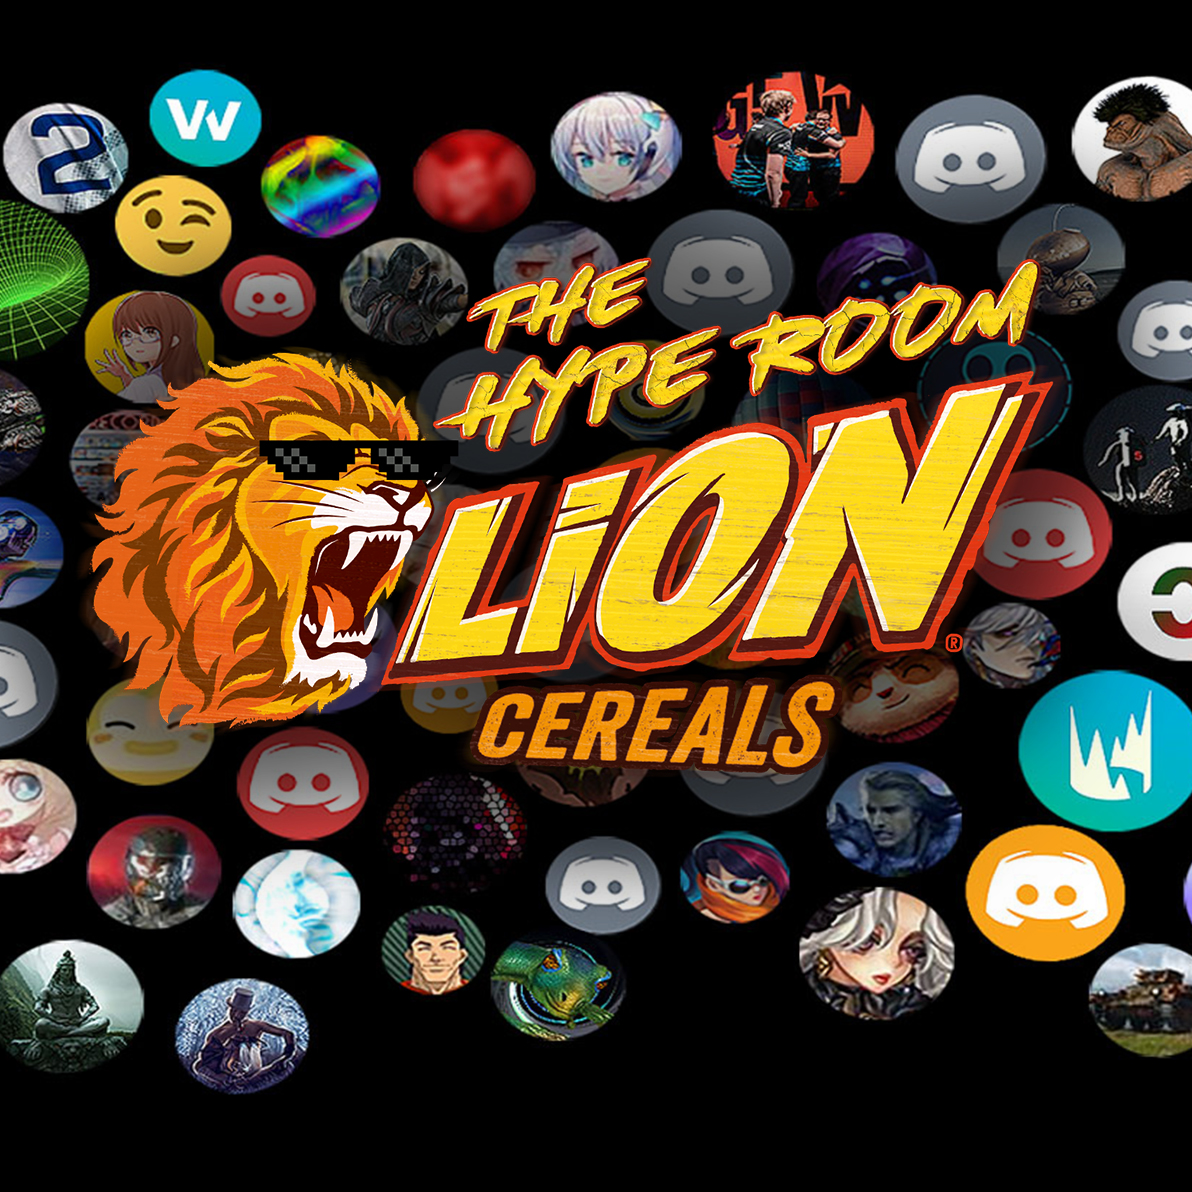 LION Cereals x LEC The Hype ROom